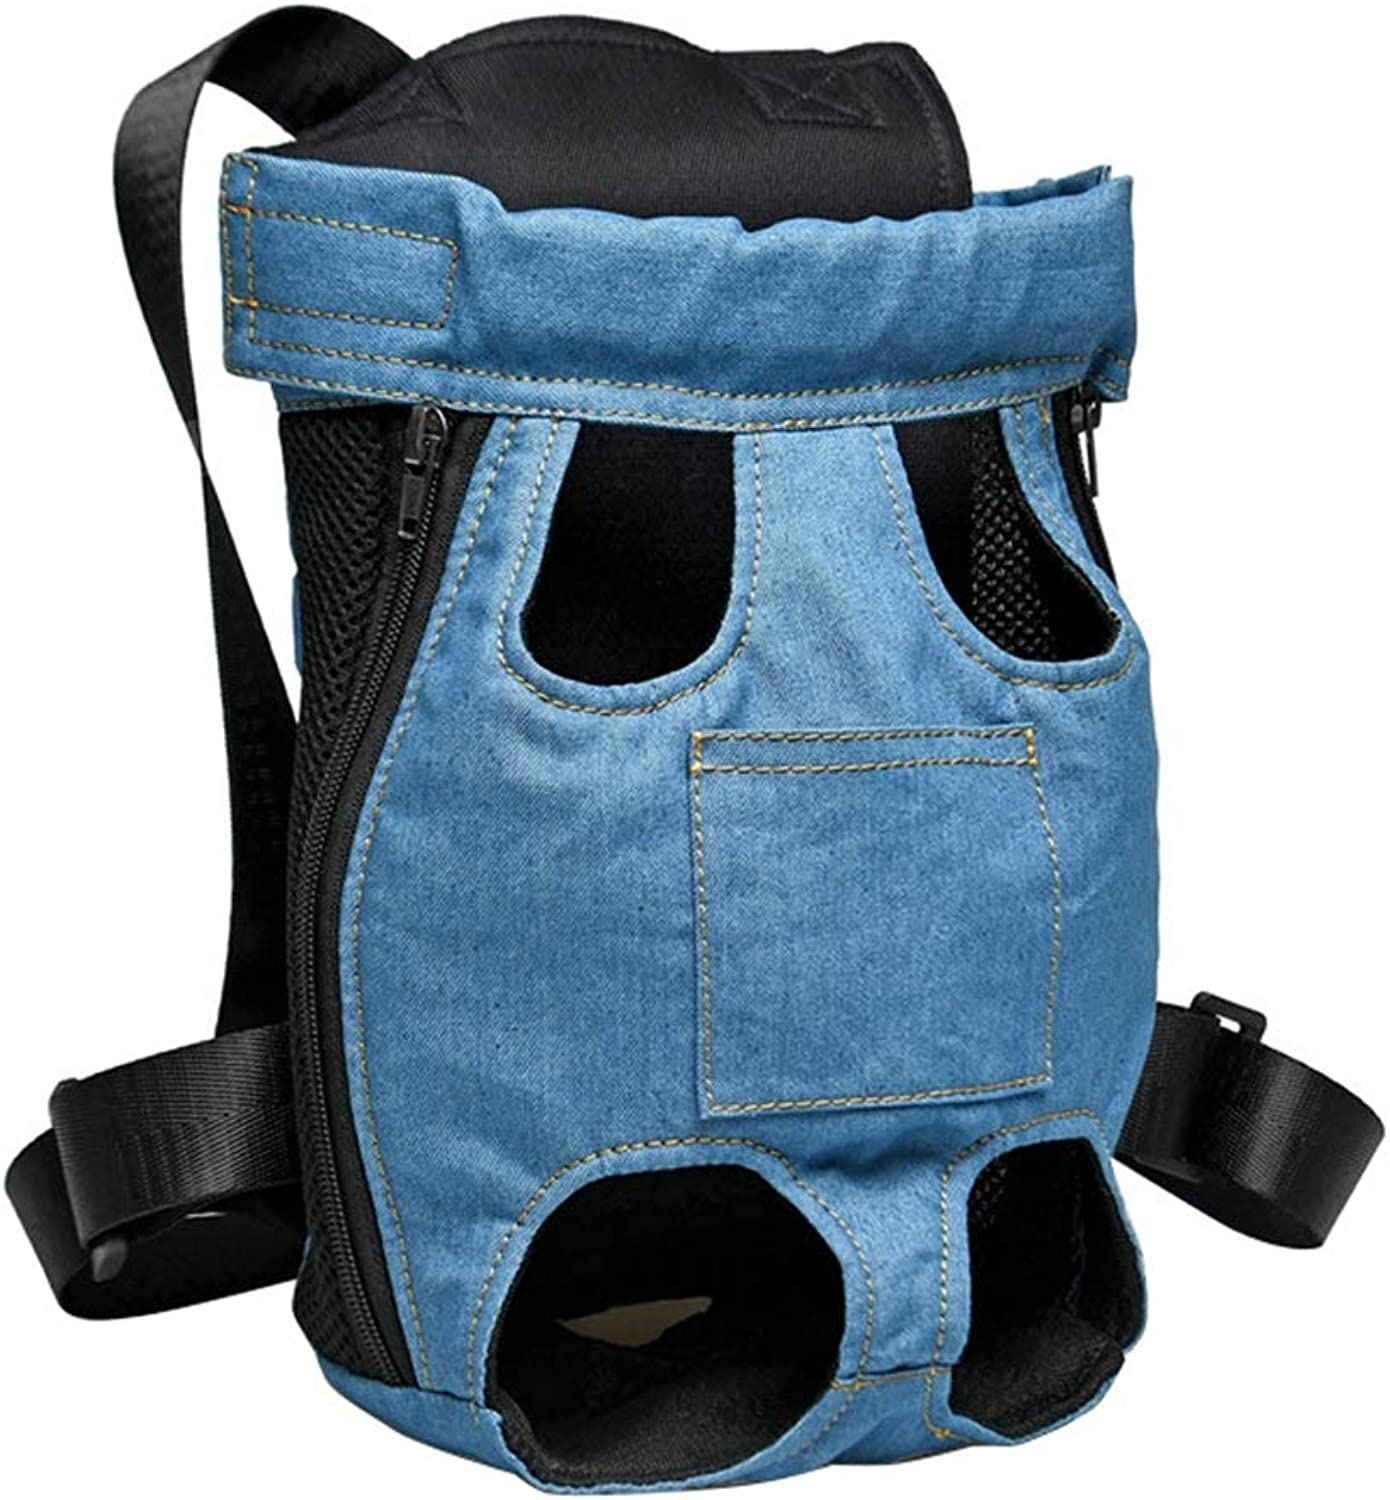 Dog Carrier Backpack Legs Out Front Adjustable Puppy Cat Small Bag with Shoulder Strap and Sling for Traveling Hiking Camping Outdoor